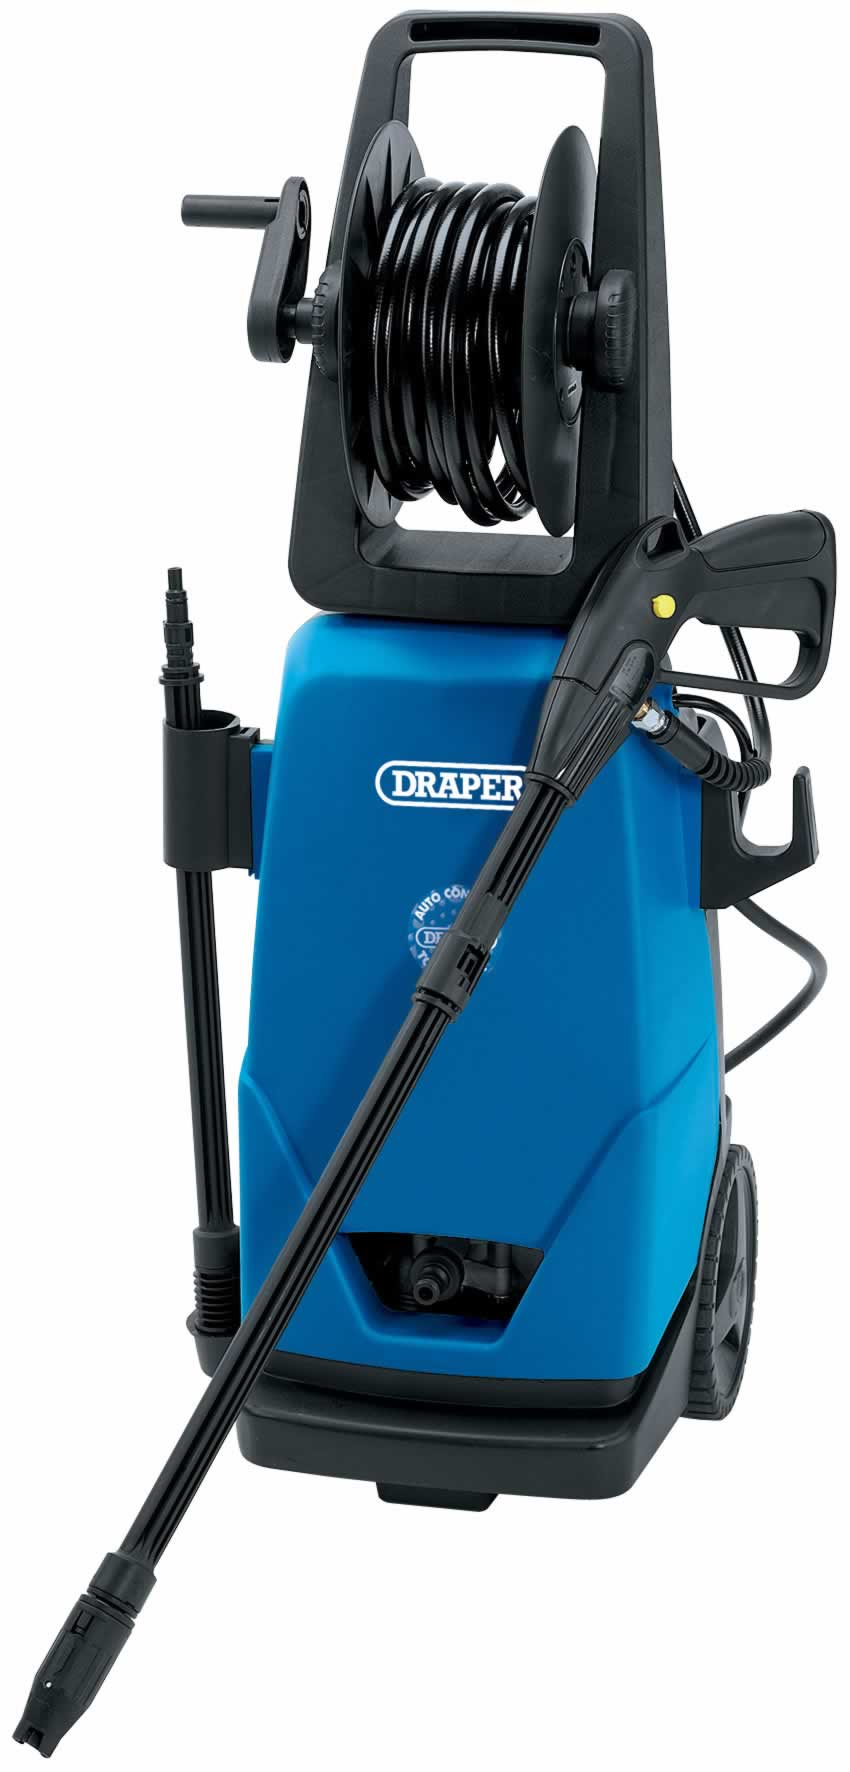 2100W 230V PRESSURE WASHER WITH TOTAL STOP FEATURE